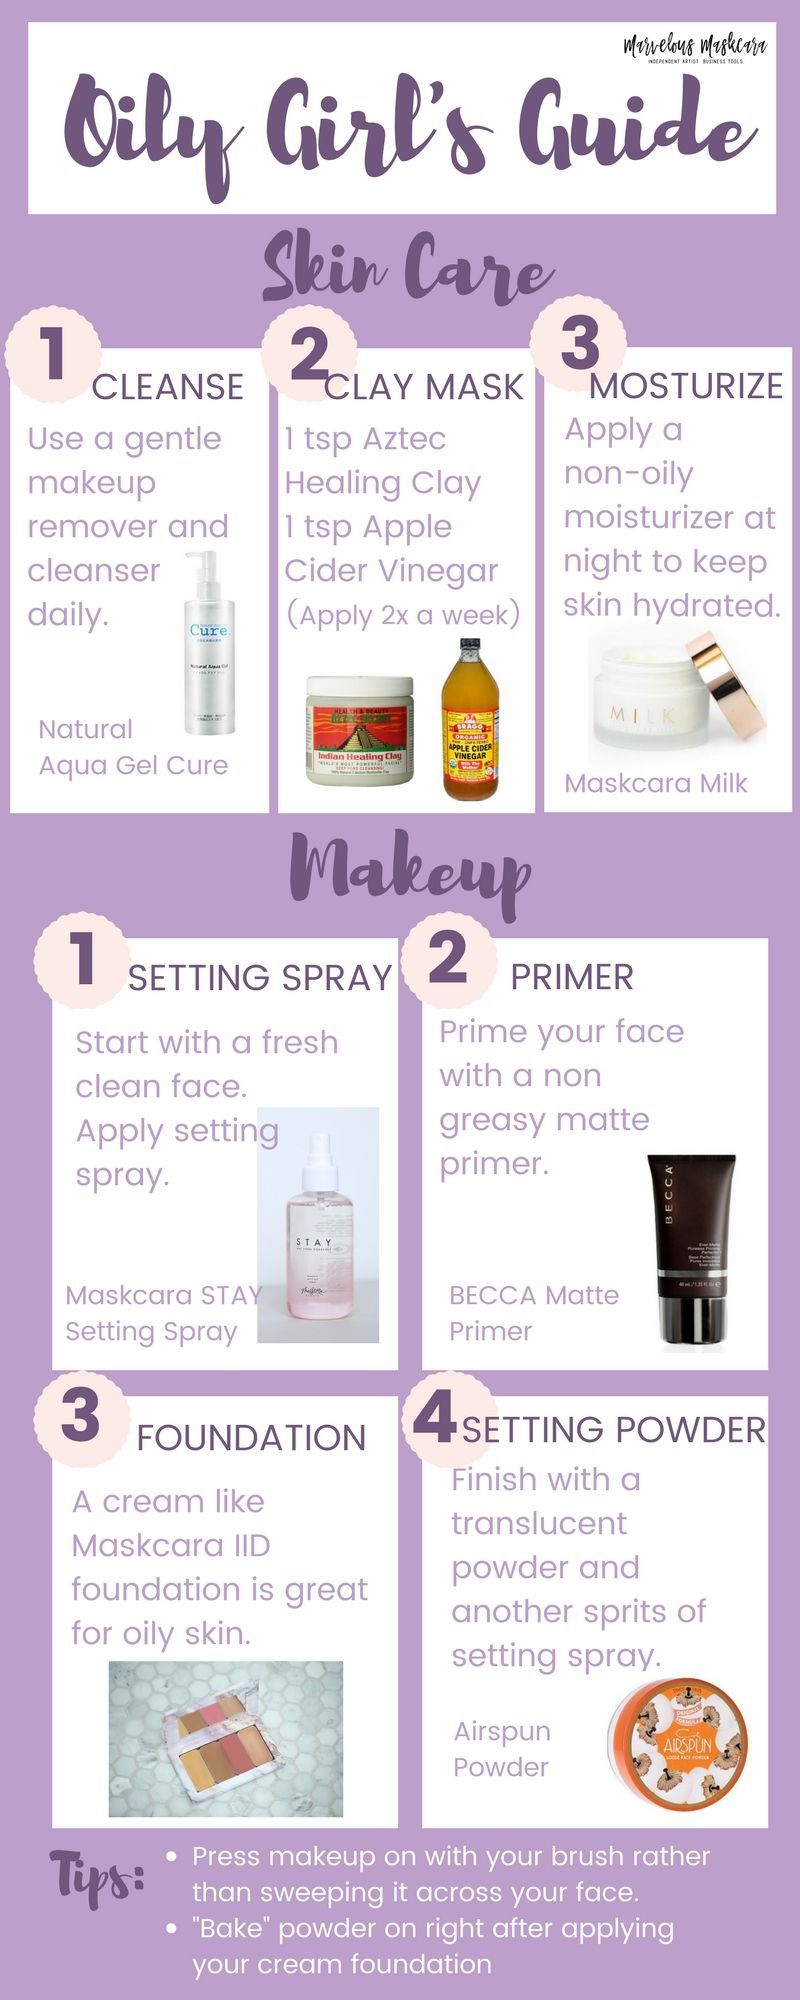 Oily Girls Guide Makeup And Skincare Tips For Women With Oily Skin Oily Skin Care Routine Skin Care Oily Skin Care